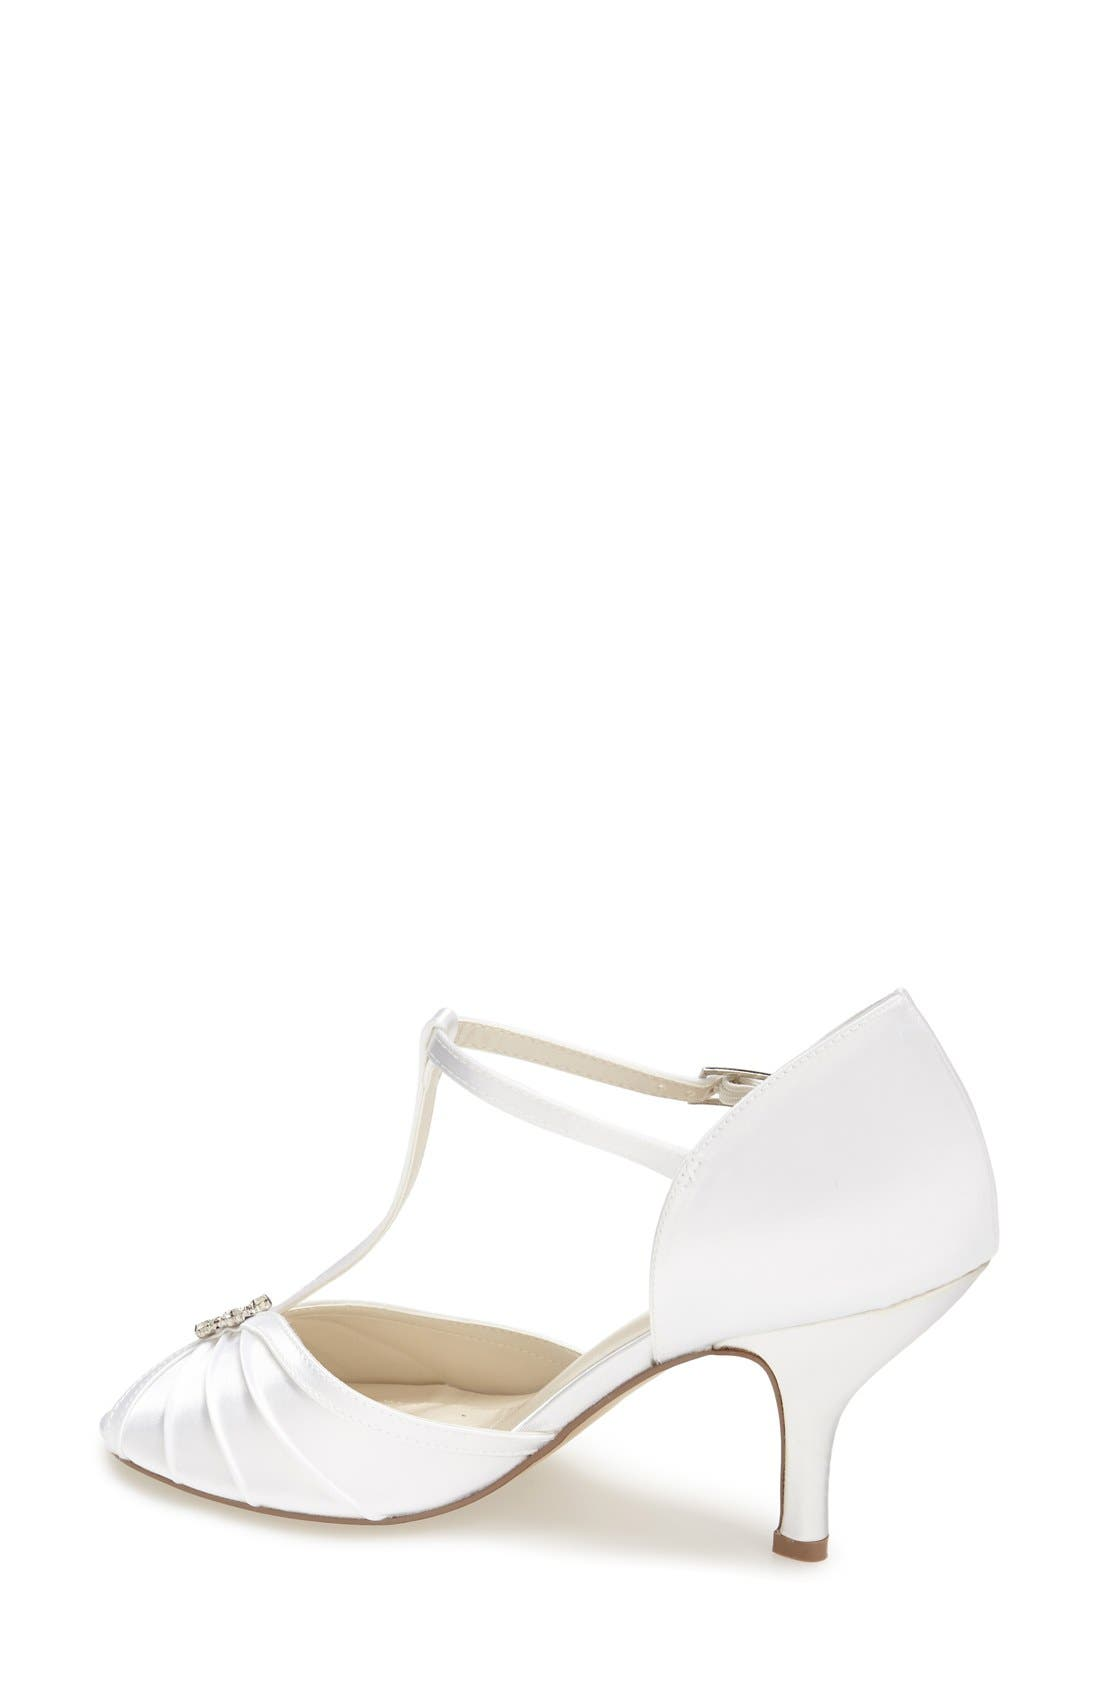 'Perfume' T-Strap Peep Toe Pump,                             Alternate thumbnail 2, color,                             WHITE SATIN